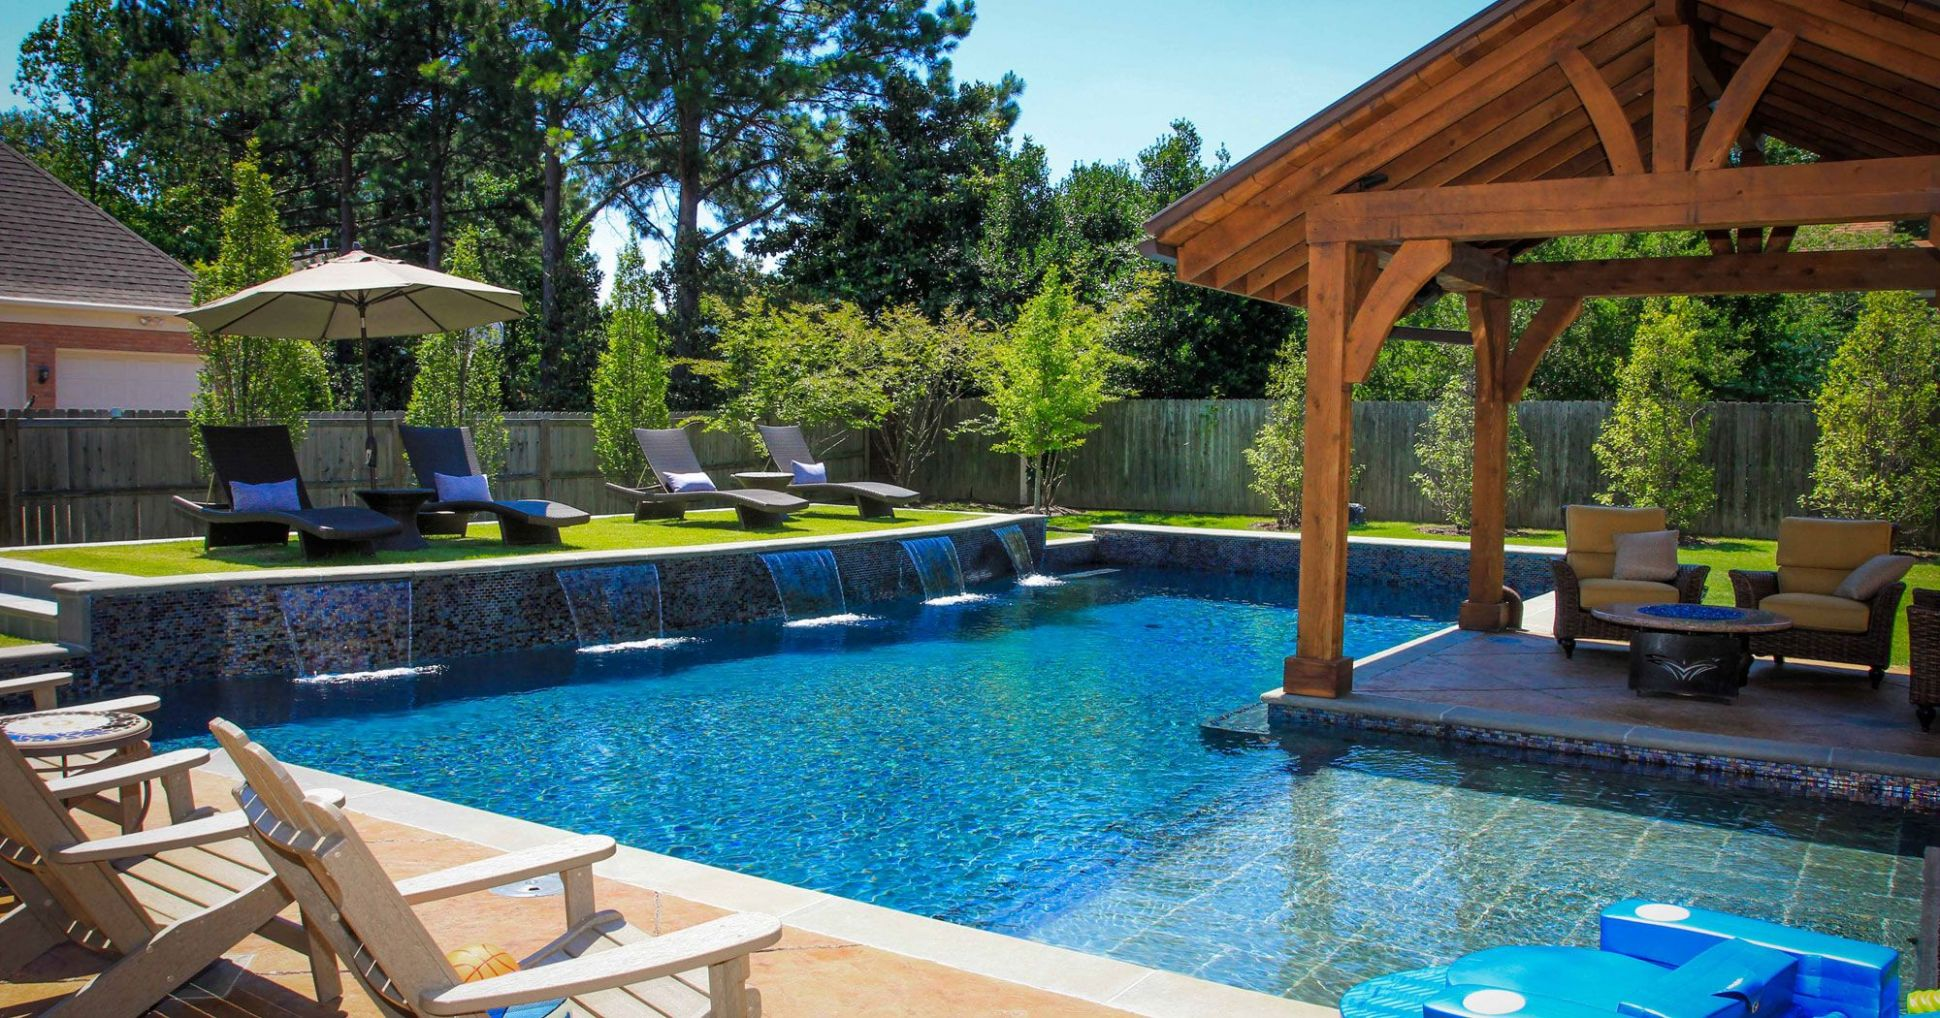 9 Backyard Pool Ideas for the Wealthy Homeowner | Small backyard ..